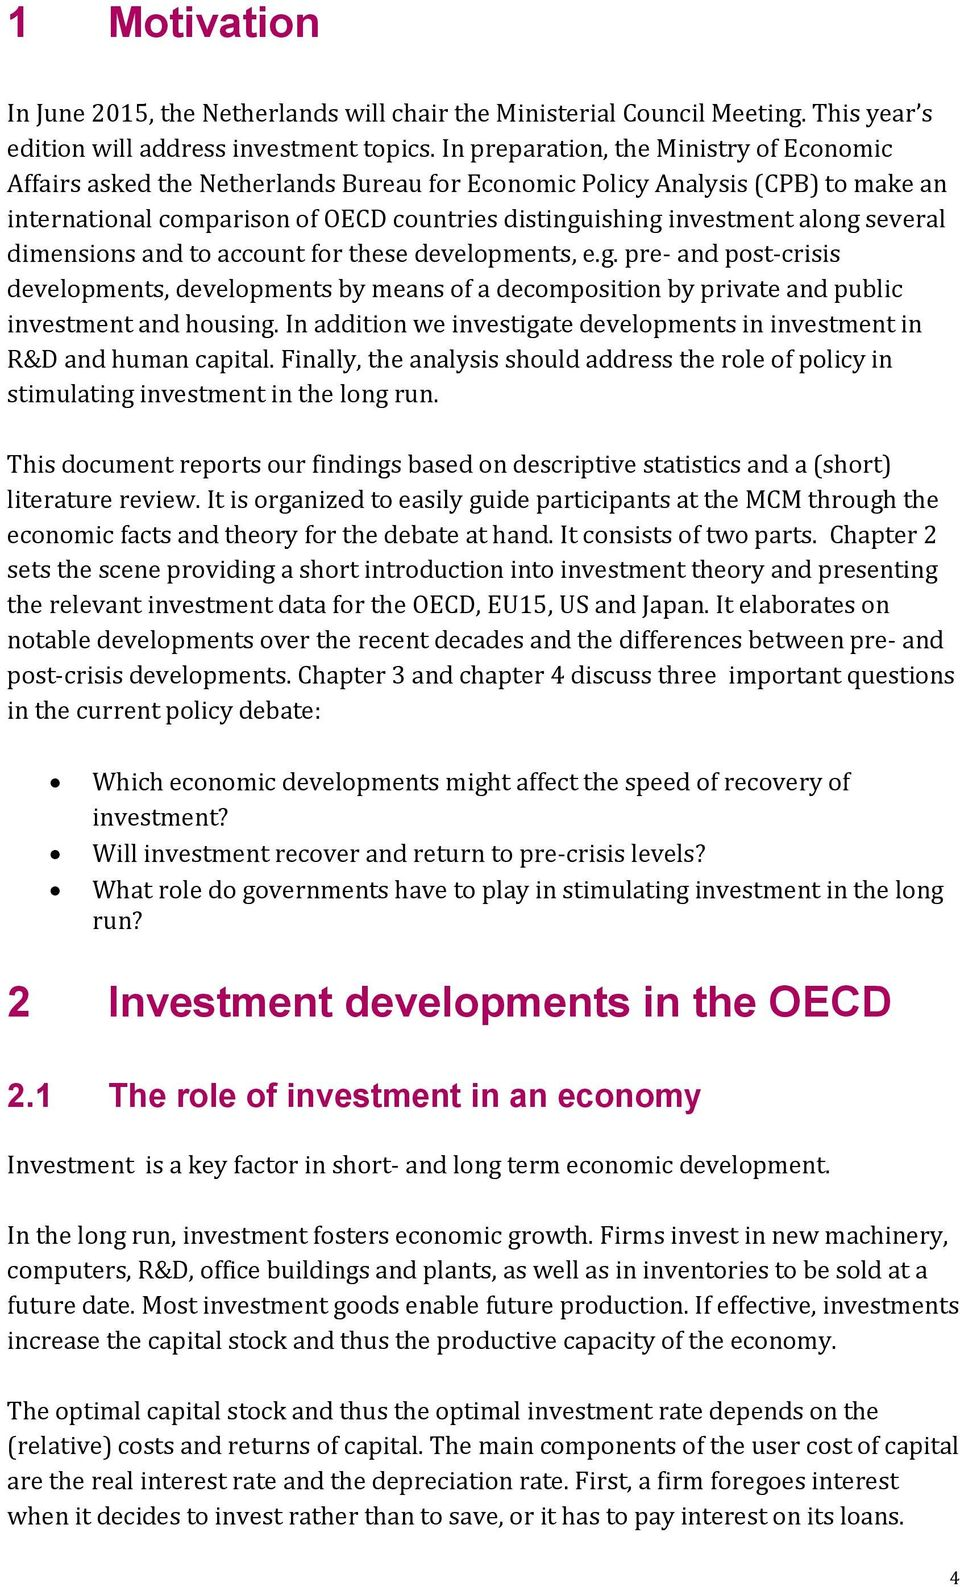 several dimensions and to account for these developments, e.g. pre- and post-crisis developments, developments by means of a decomposition by private and public investment and housing.